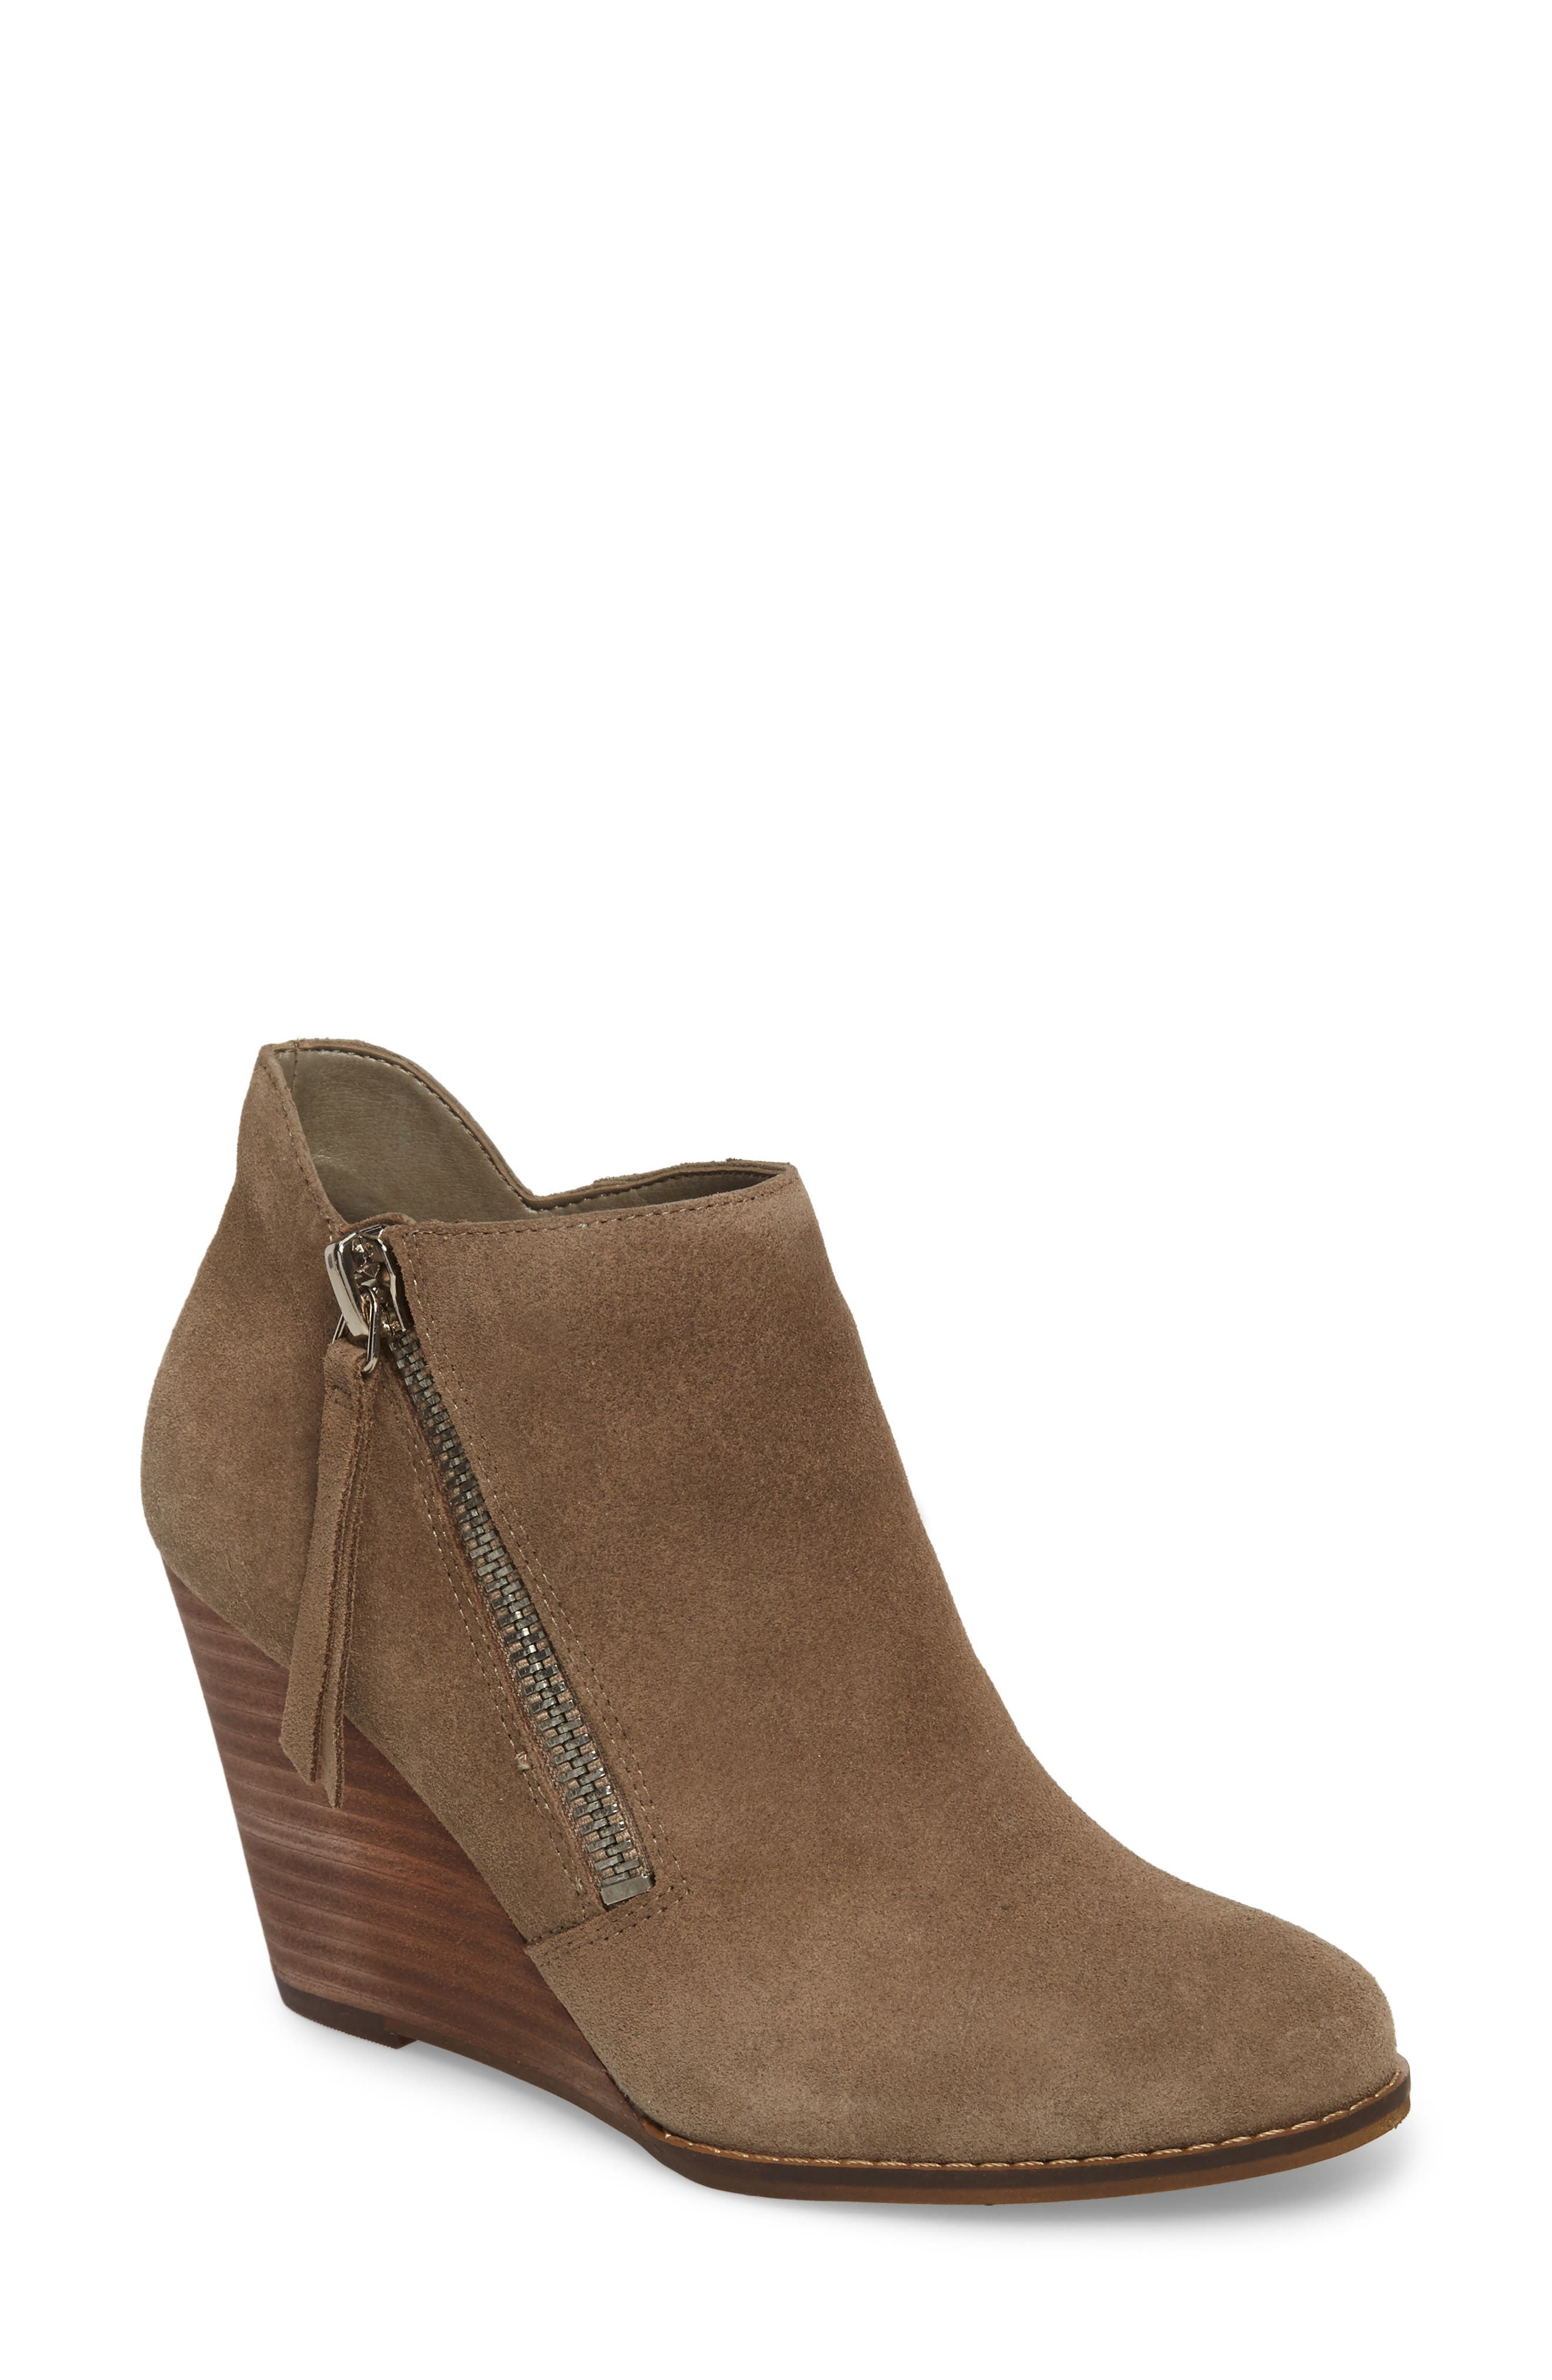 Carnivela Wedge Bootie,                             Main thumbnail 1, color,                             Greyhound Suede